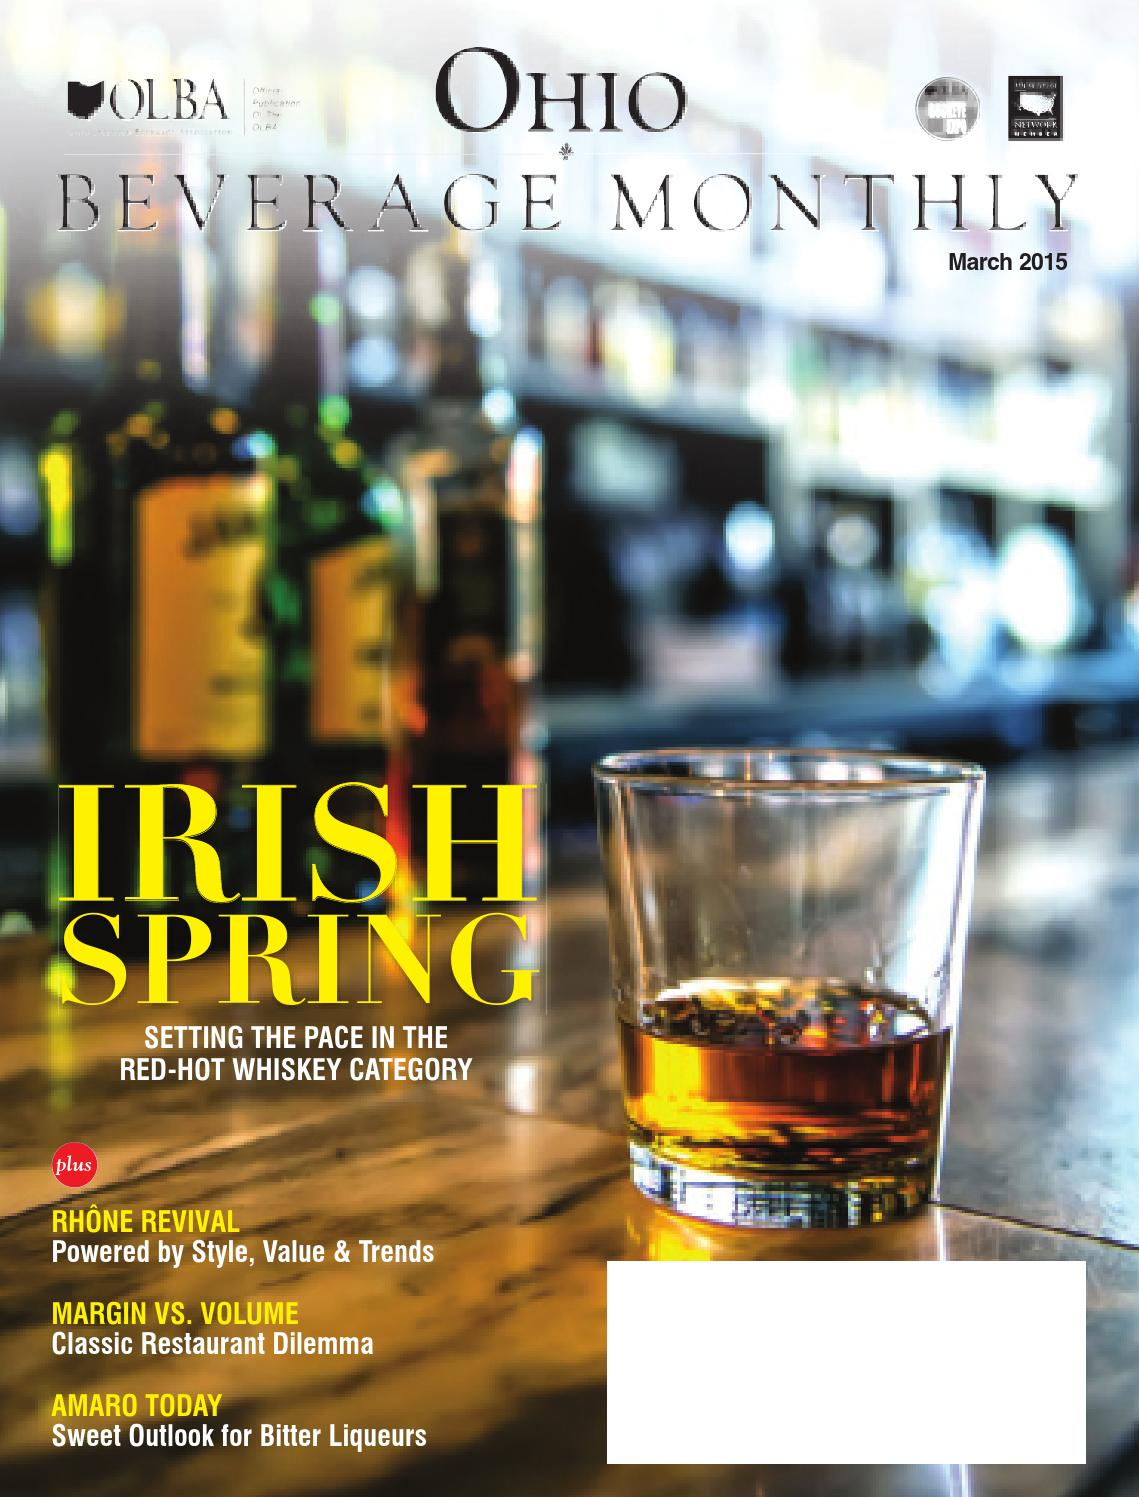 Ohio Beverage Monthly: March 2015 by Molly Hunter - issuu